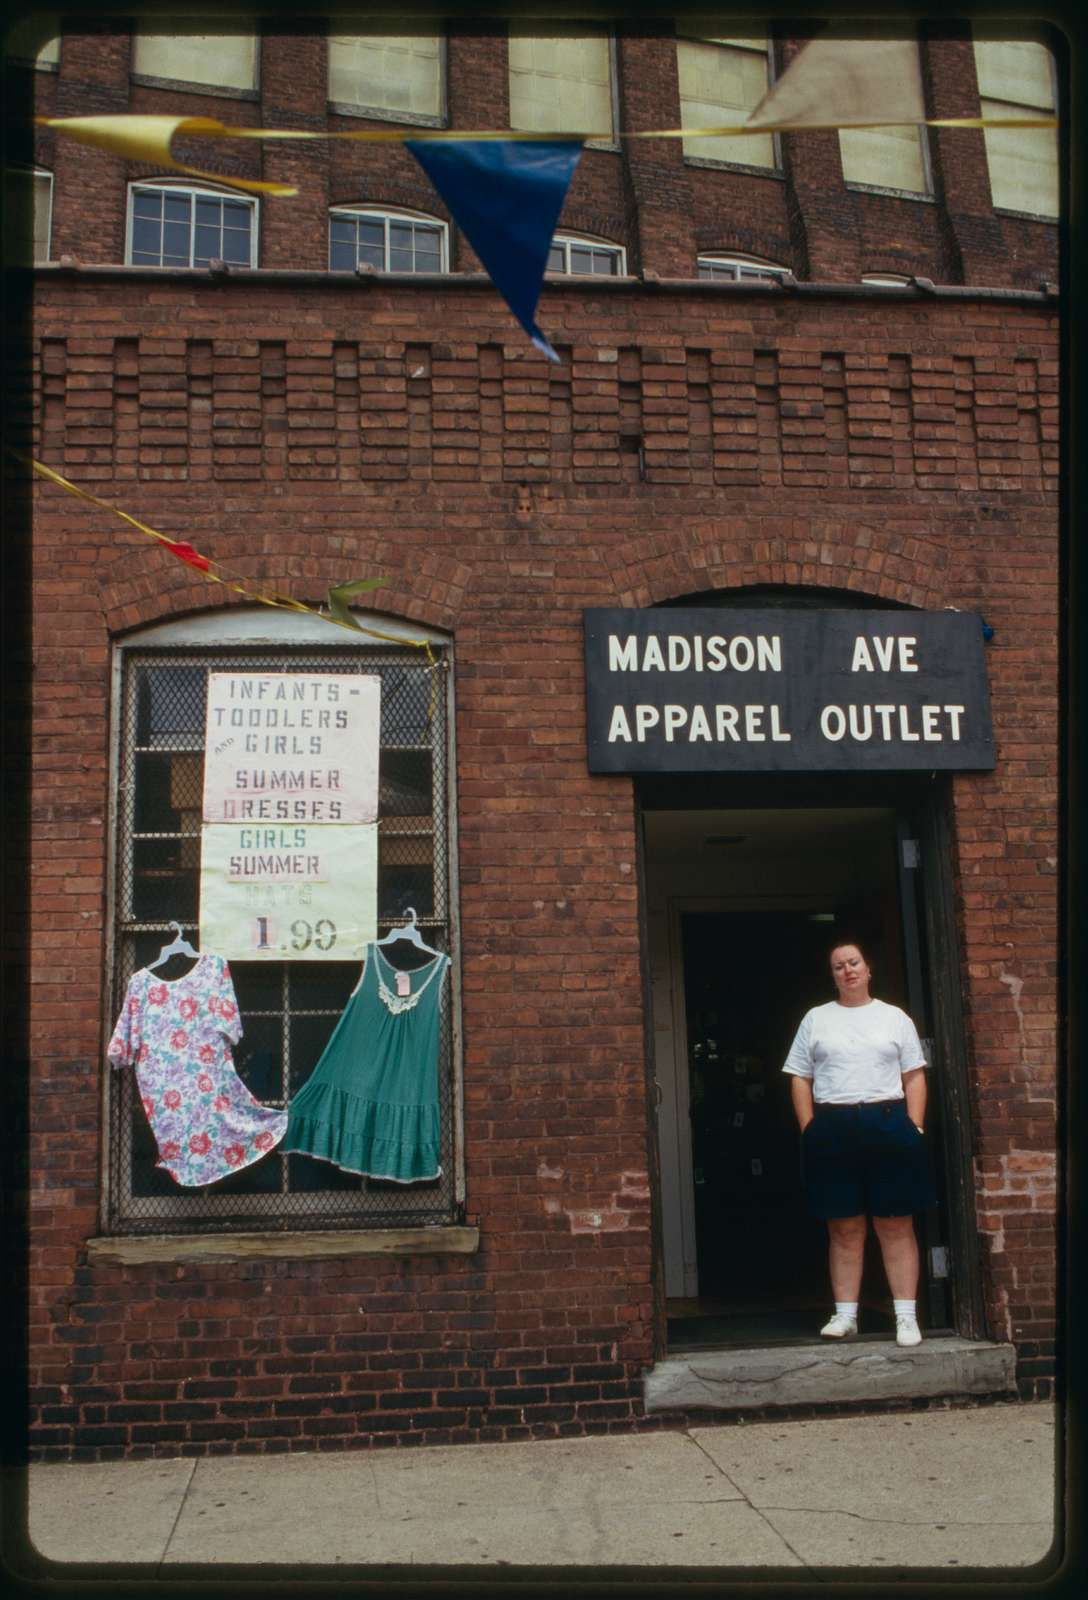 Exterior of Madison Apparel Outlet, 297 21st Avenue; worker stands in doorway.